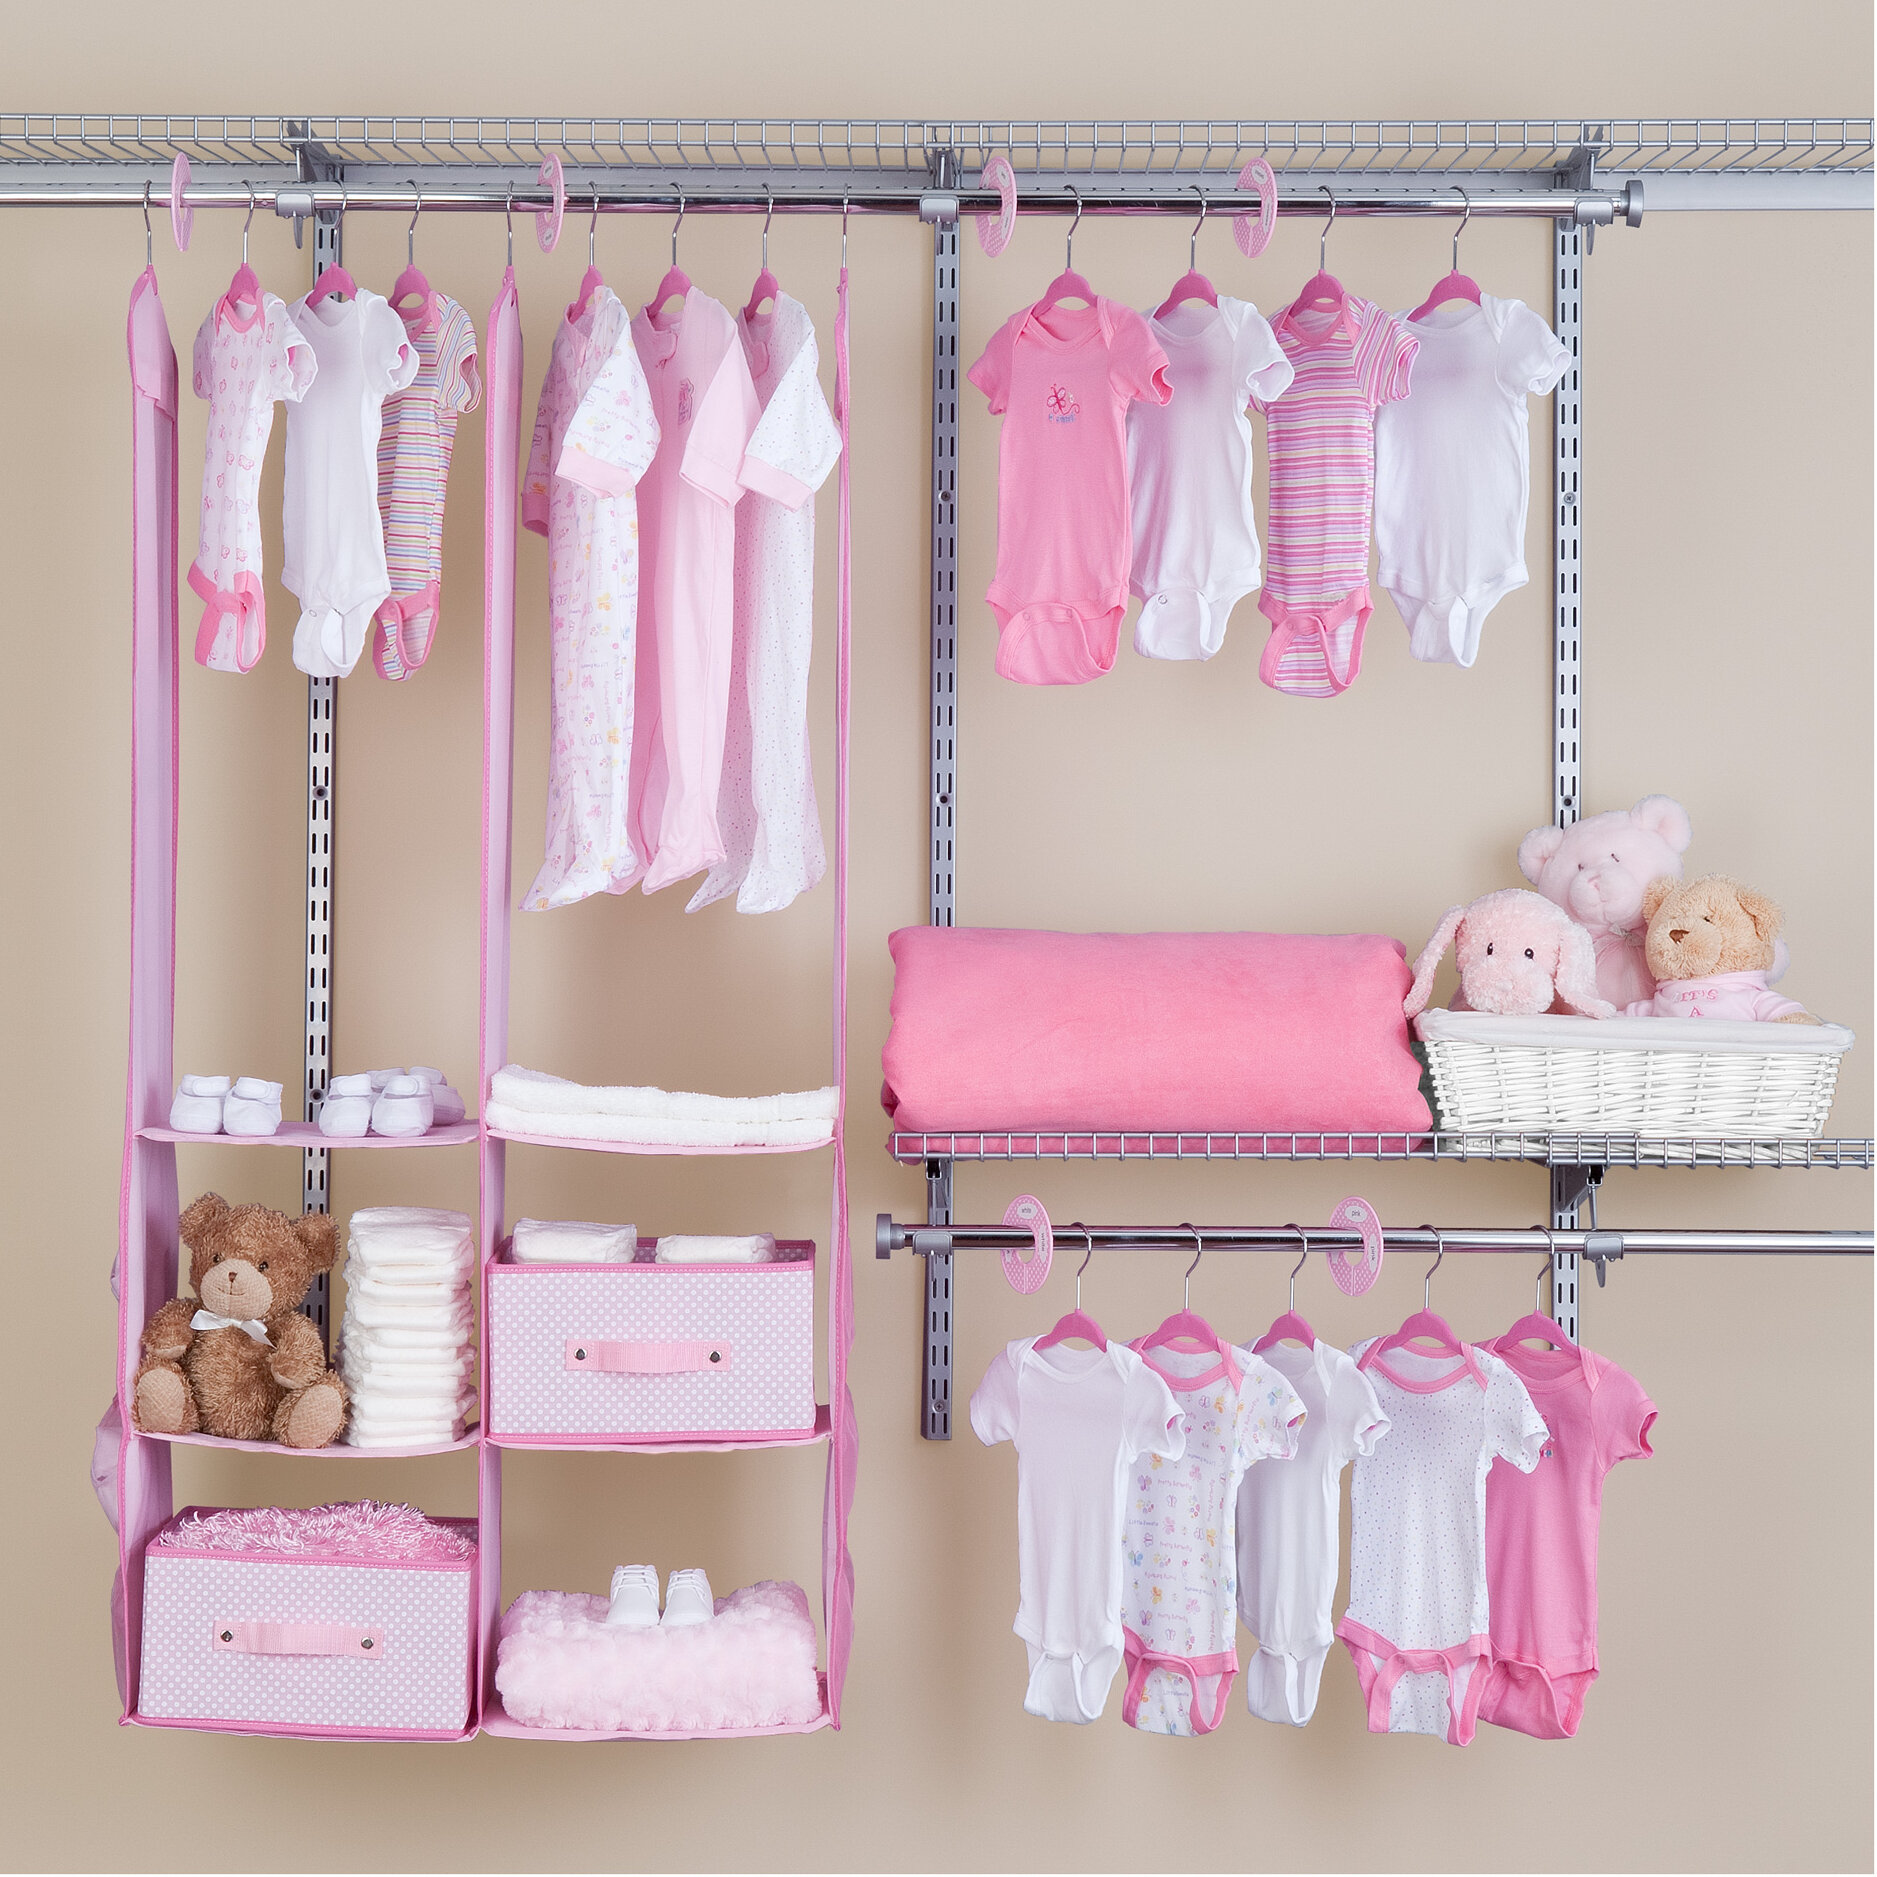 Delta Children Deep Nursery Closet Organizer 24 Piece Set Reviews Wayfair